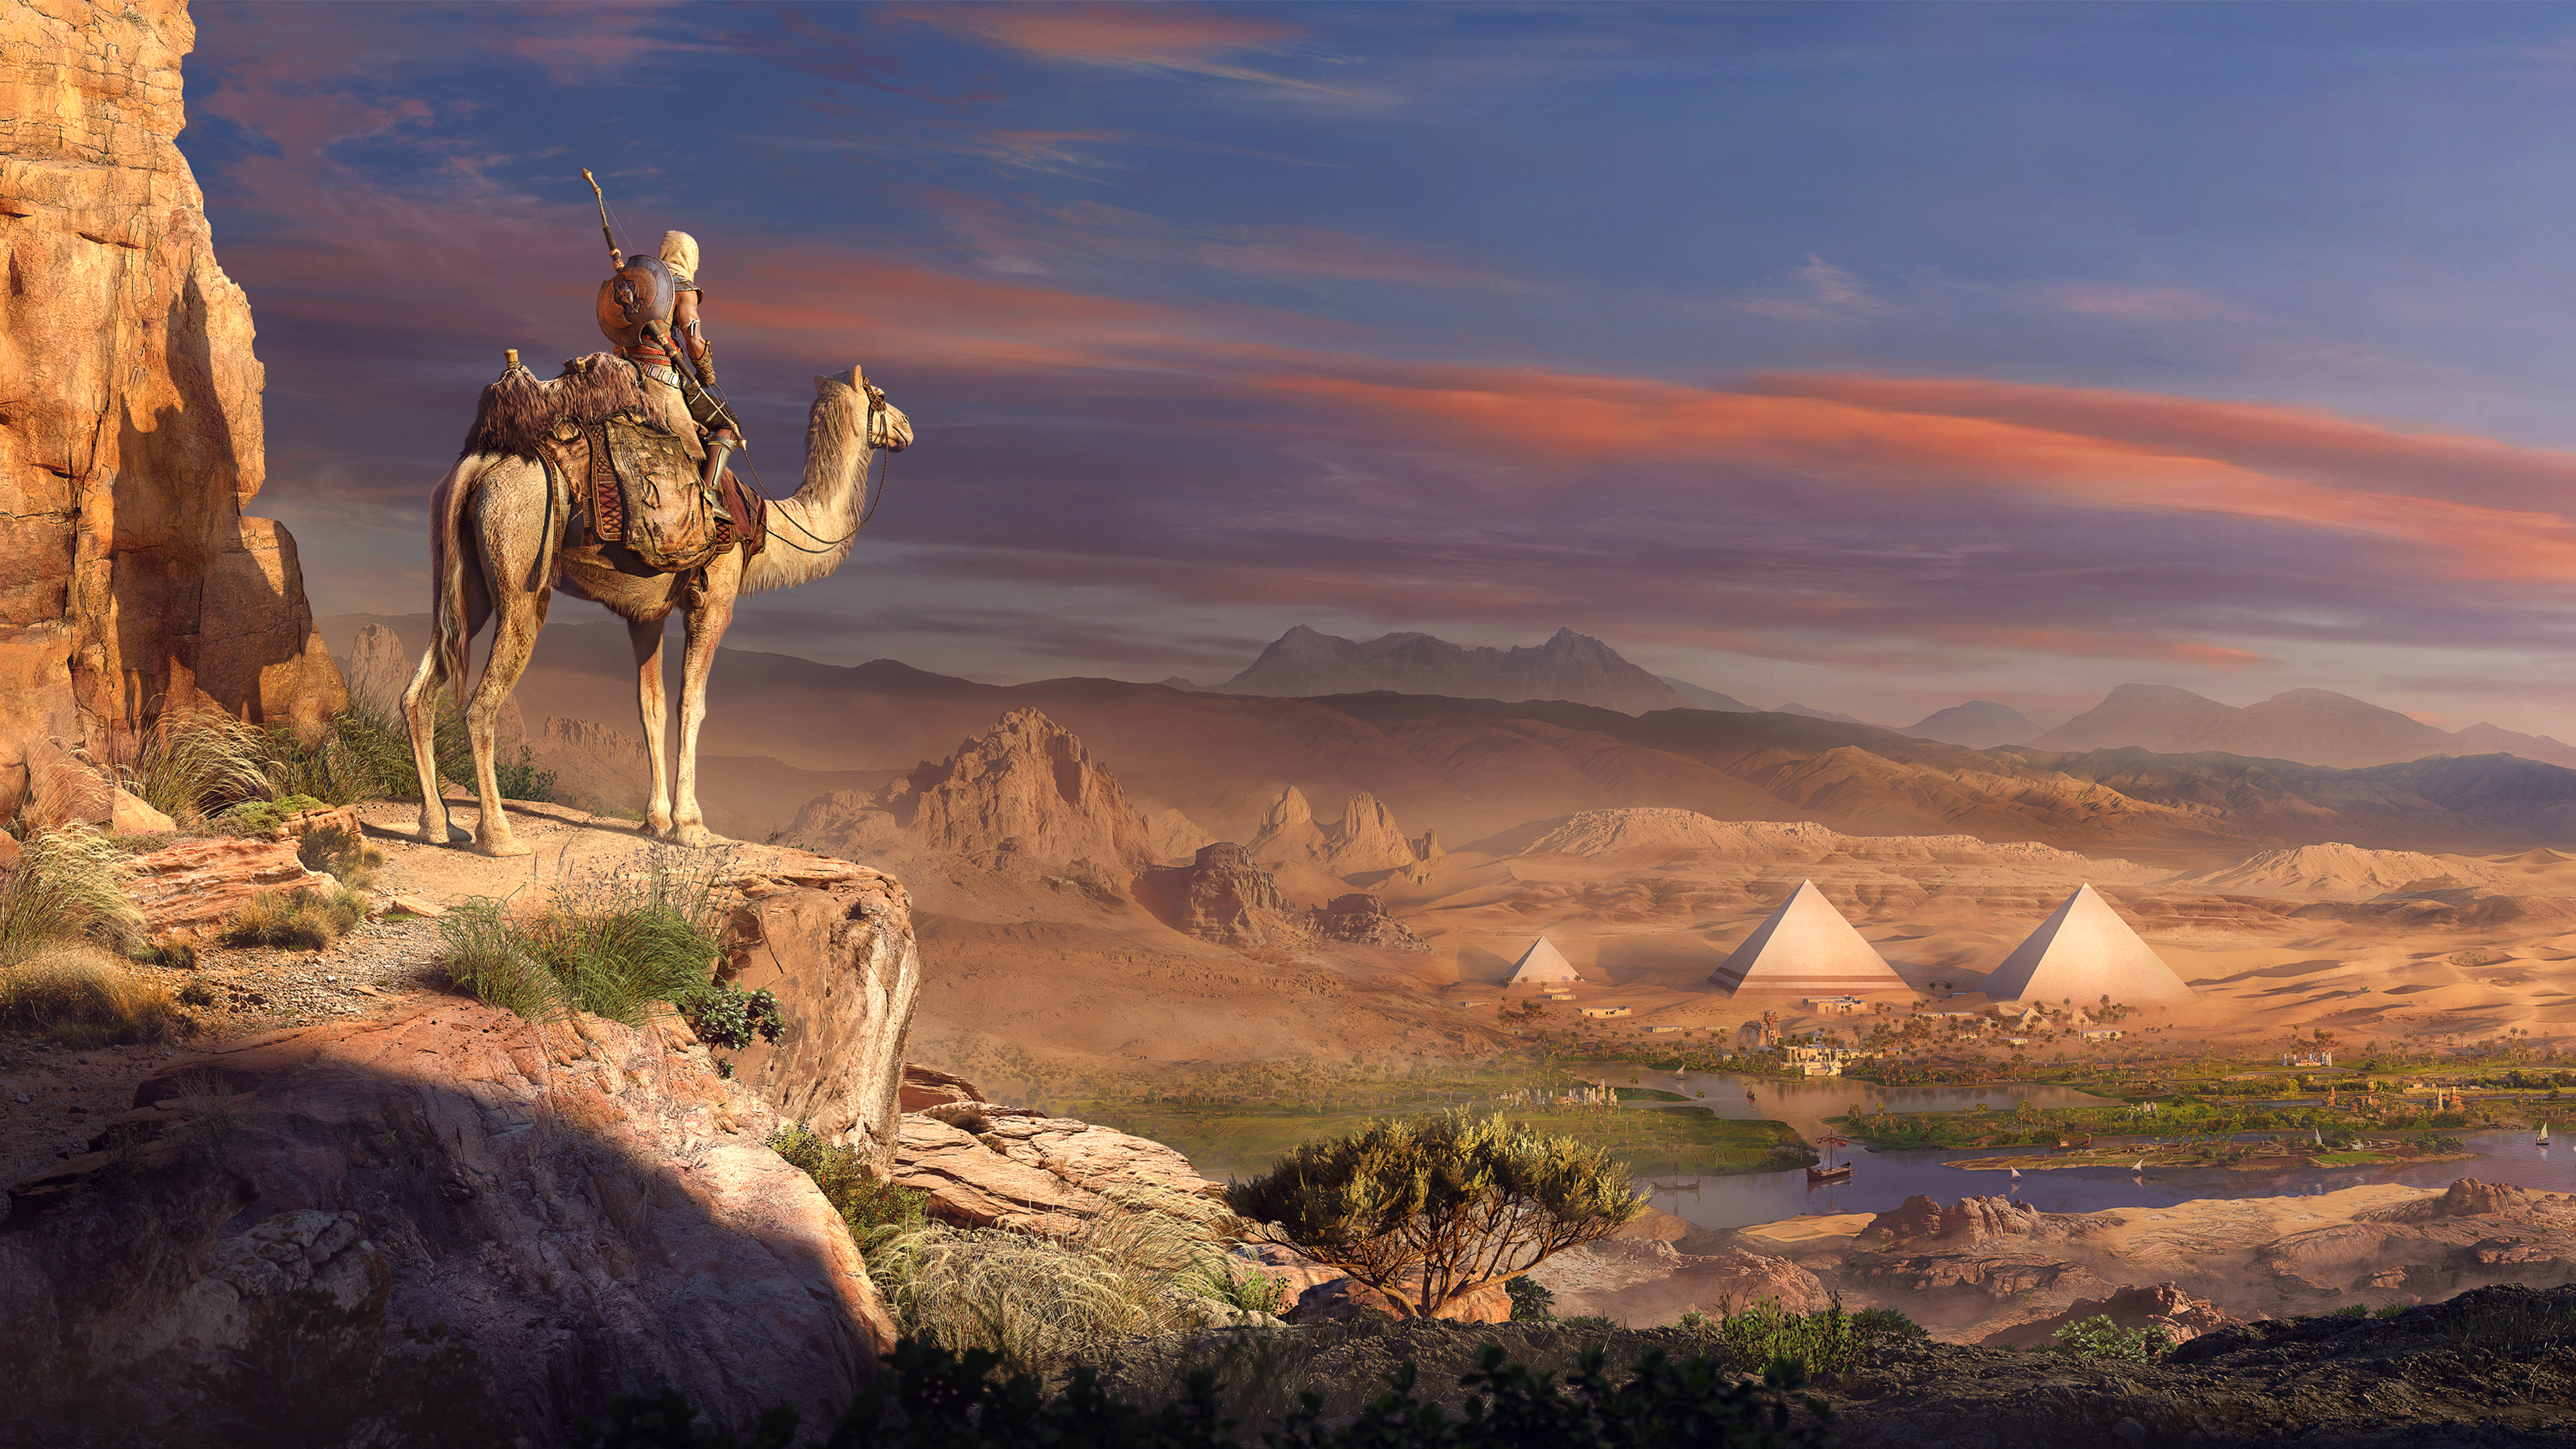 933 Desert Hd Wallpapers Background Images Wallpaper Abyss